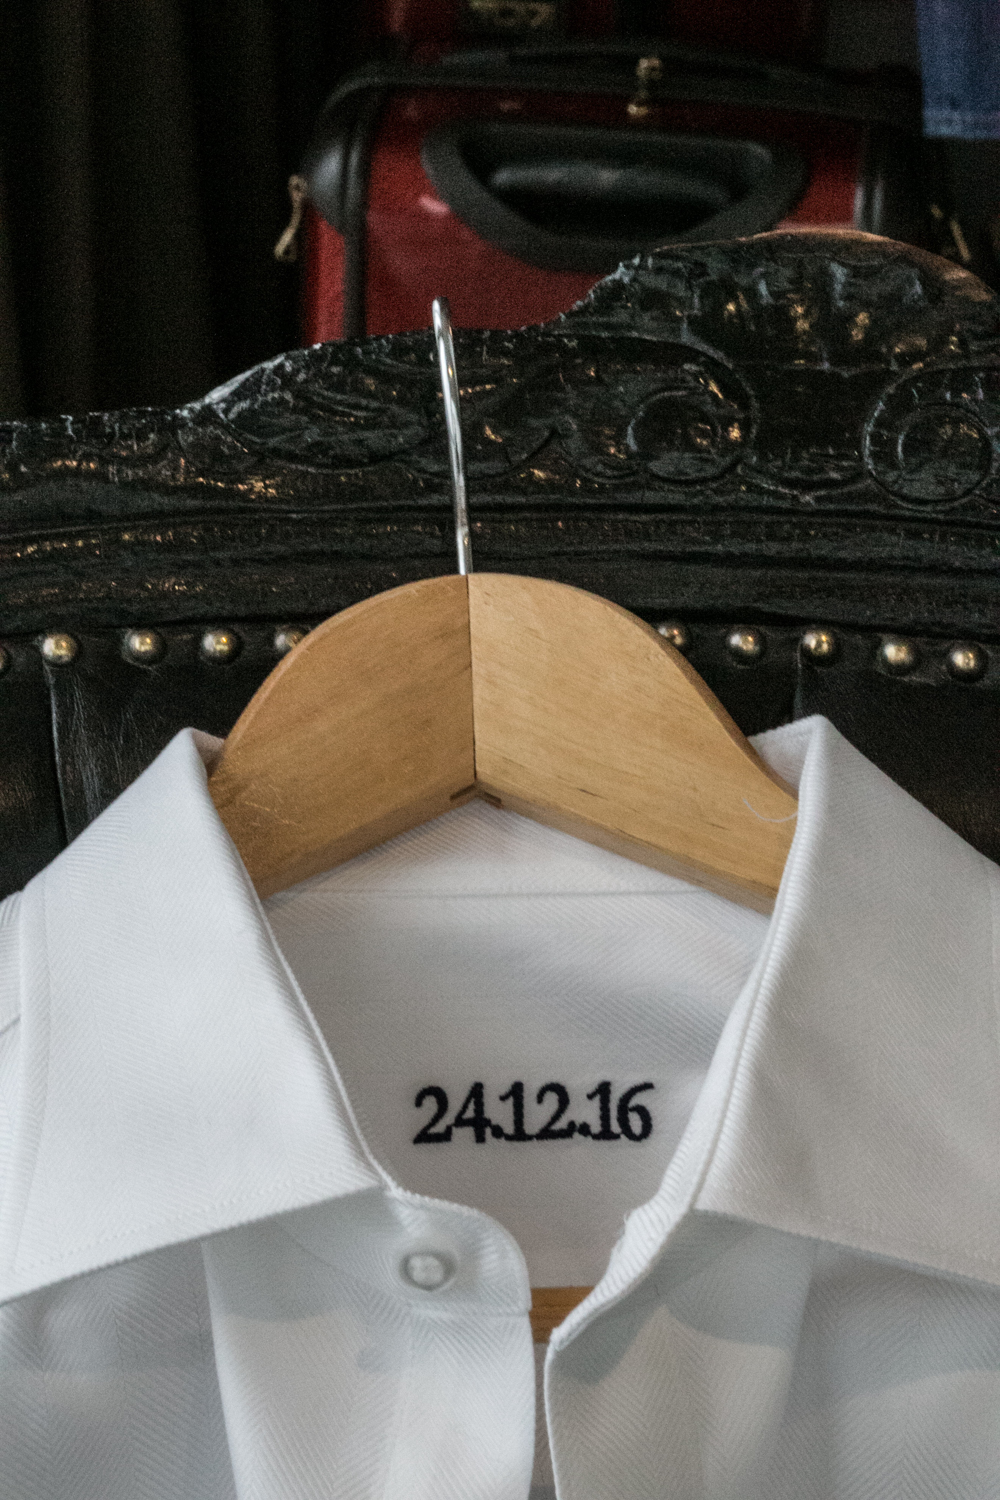 Date embroidered onto grooms shirt